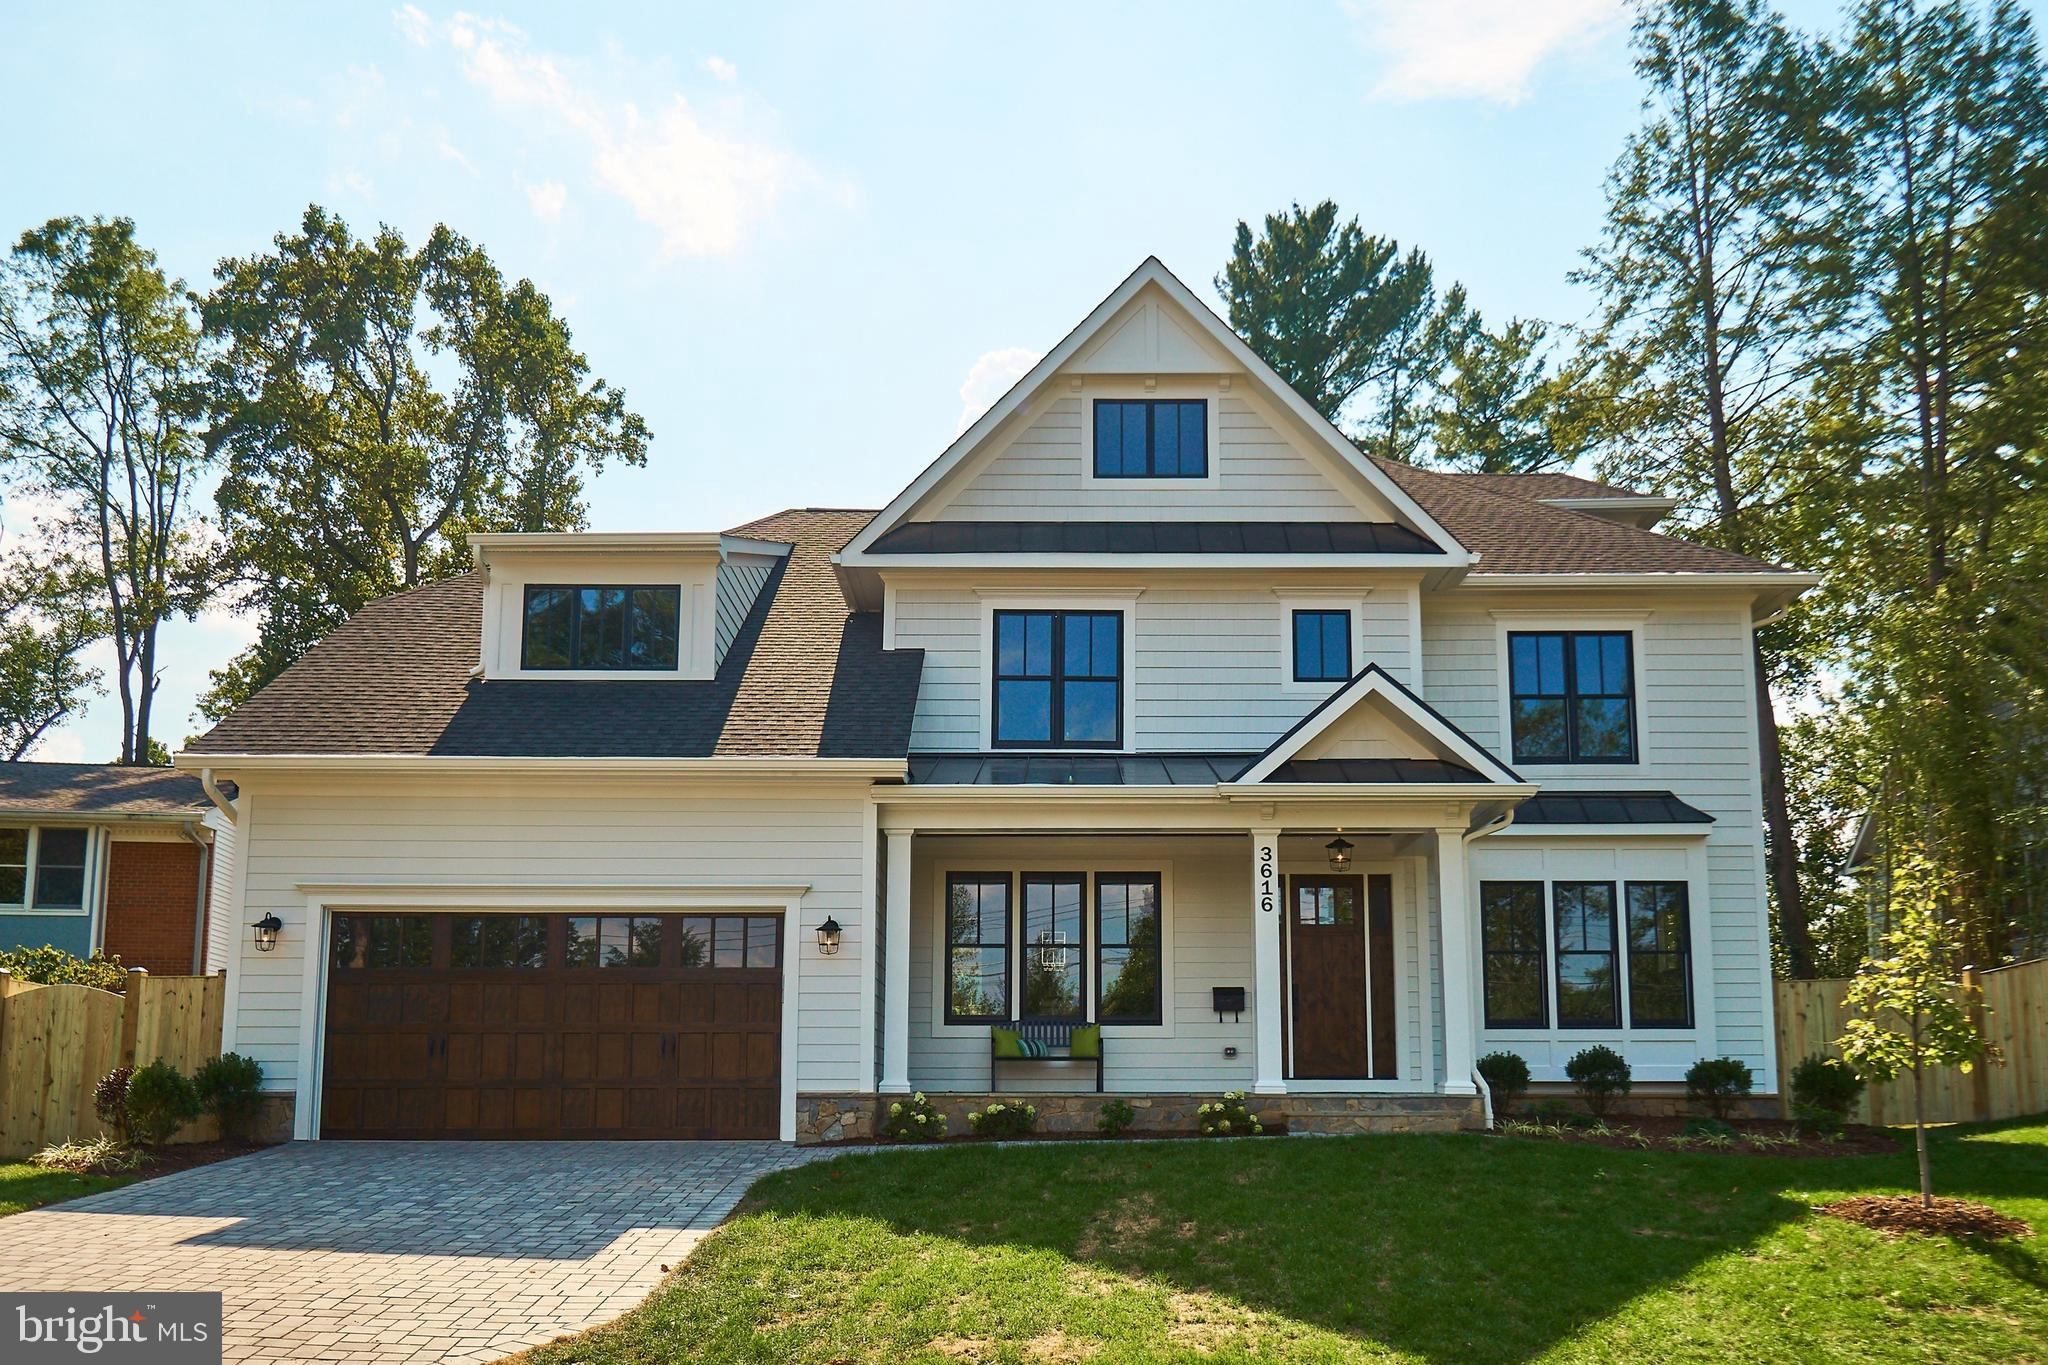 North Arlington Homes For Sale | The Stokes Group